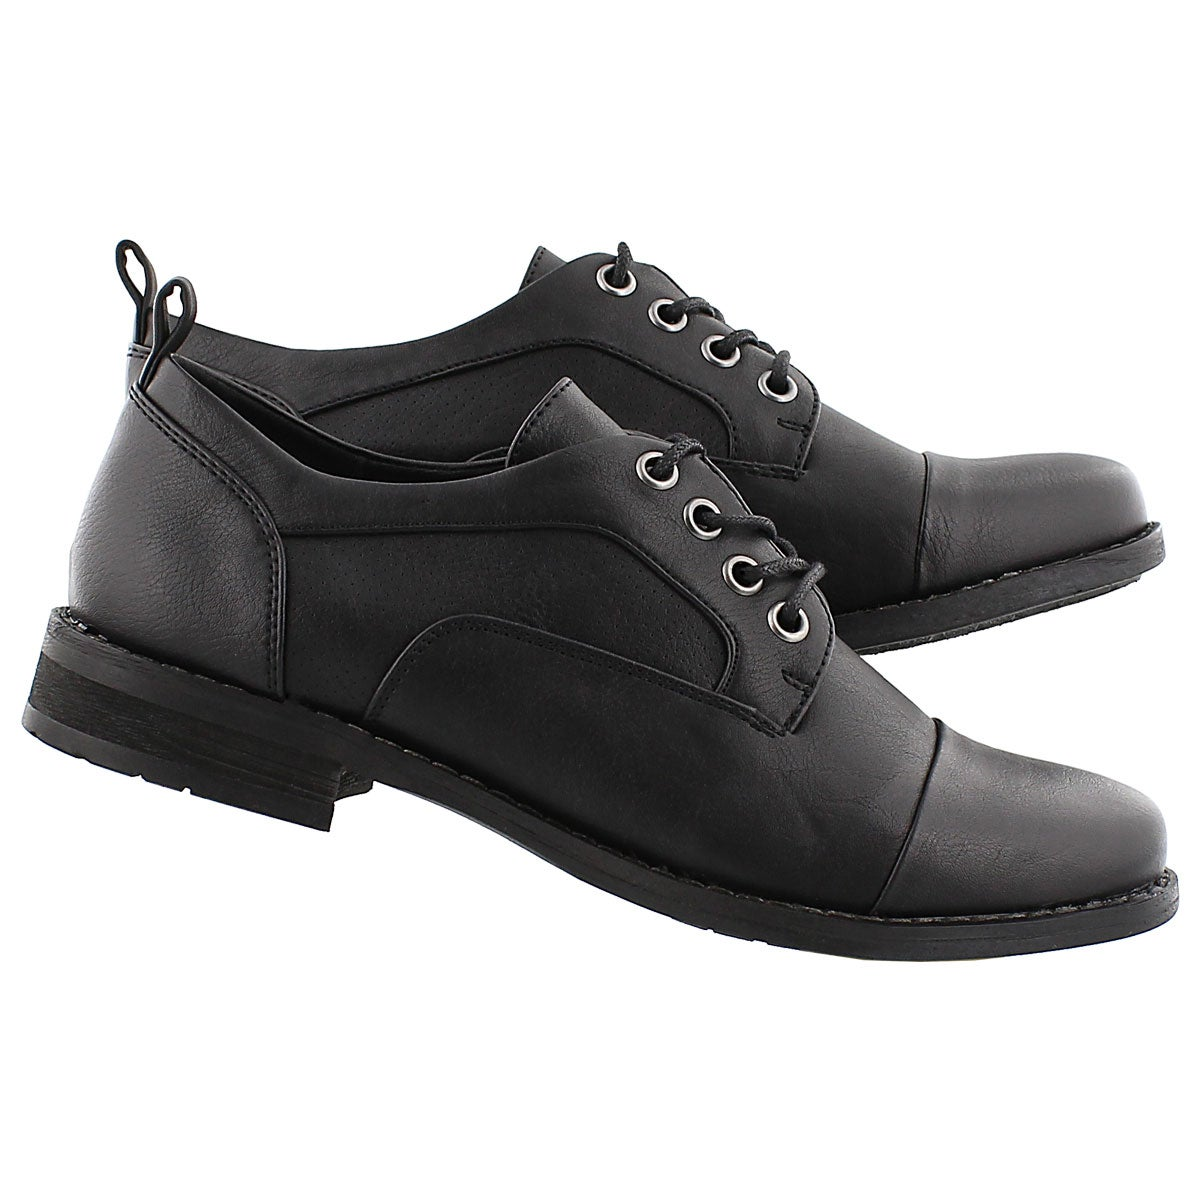 Lds Besilia black lace up oxford